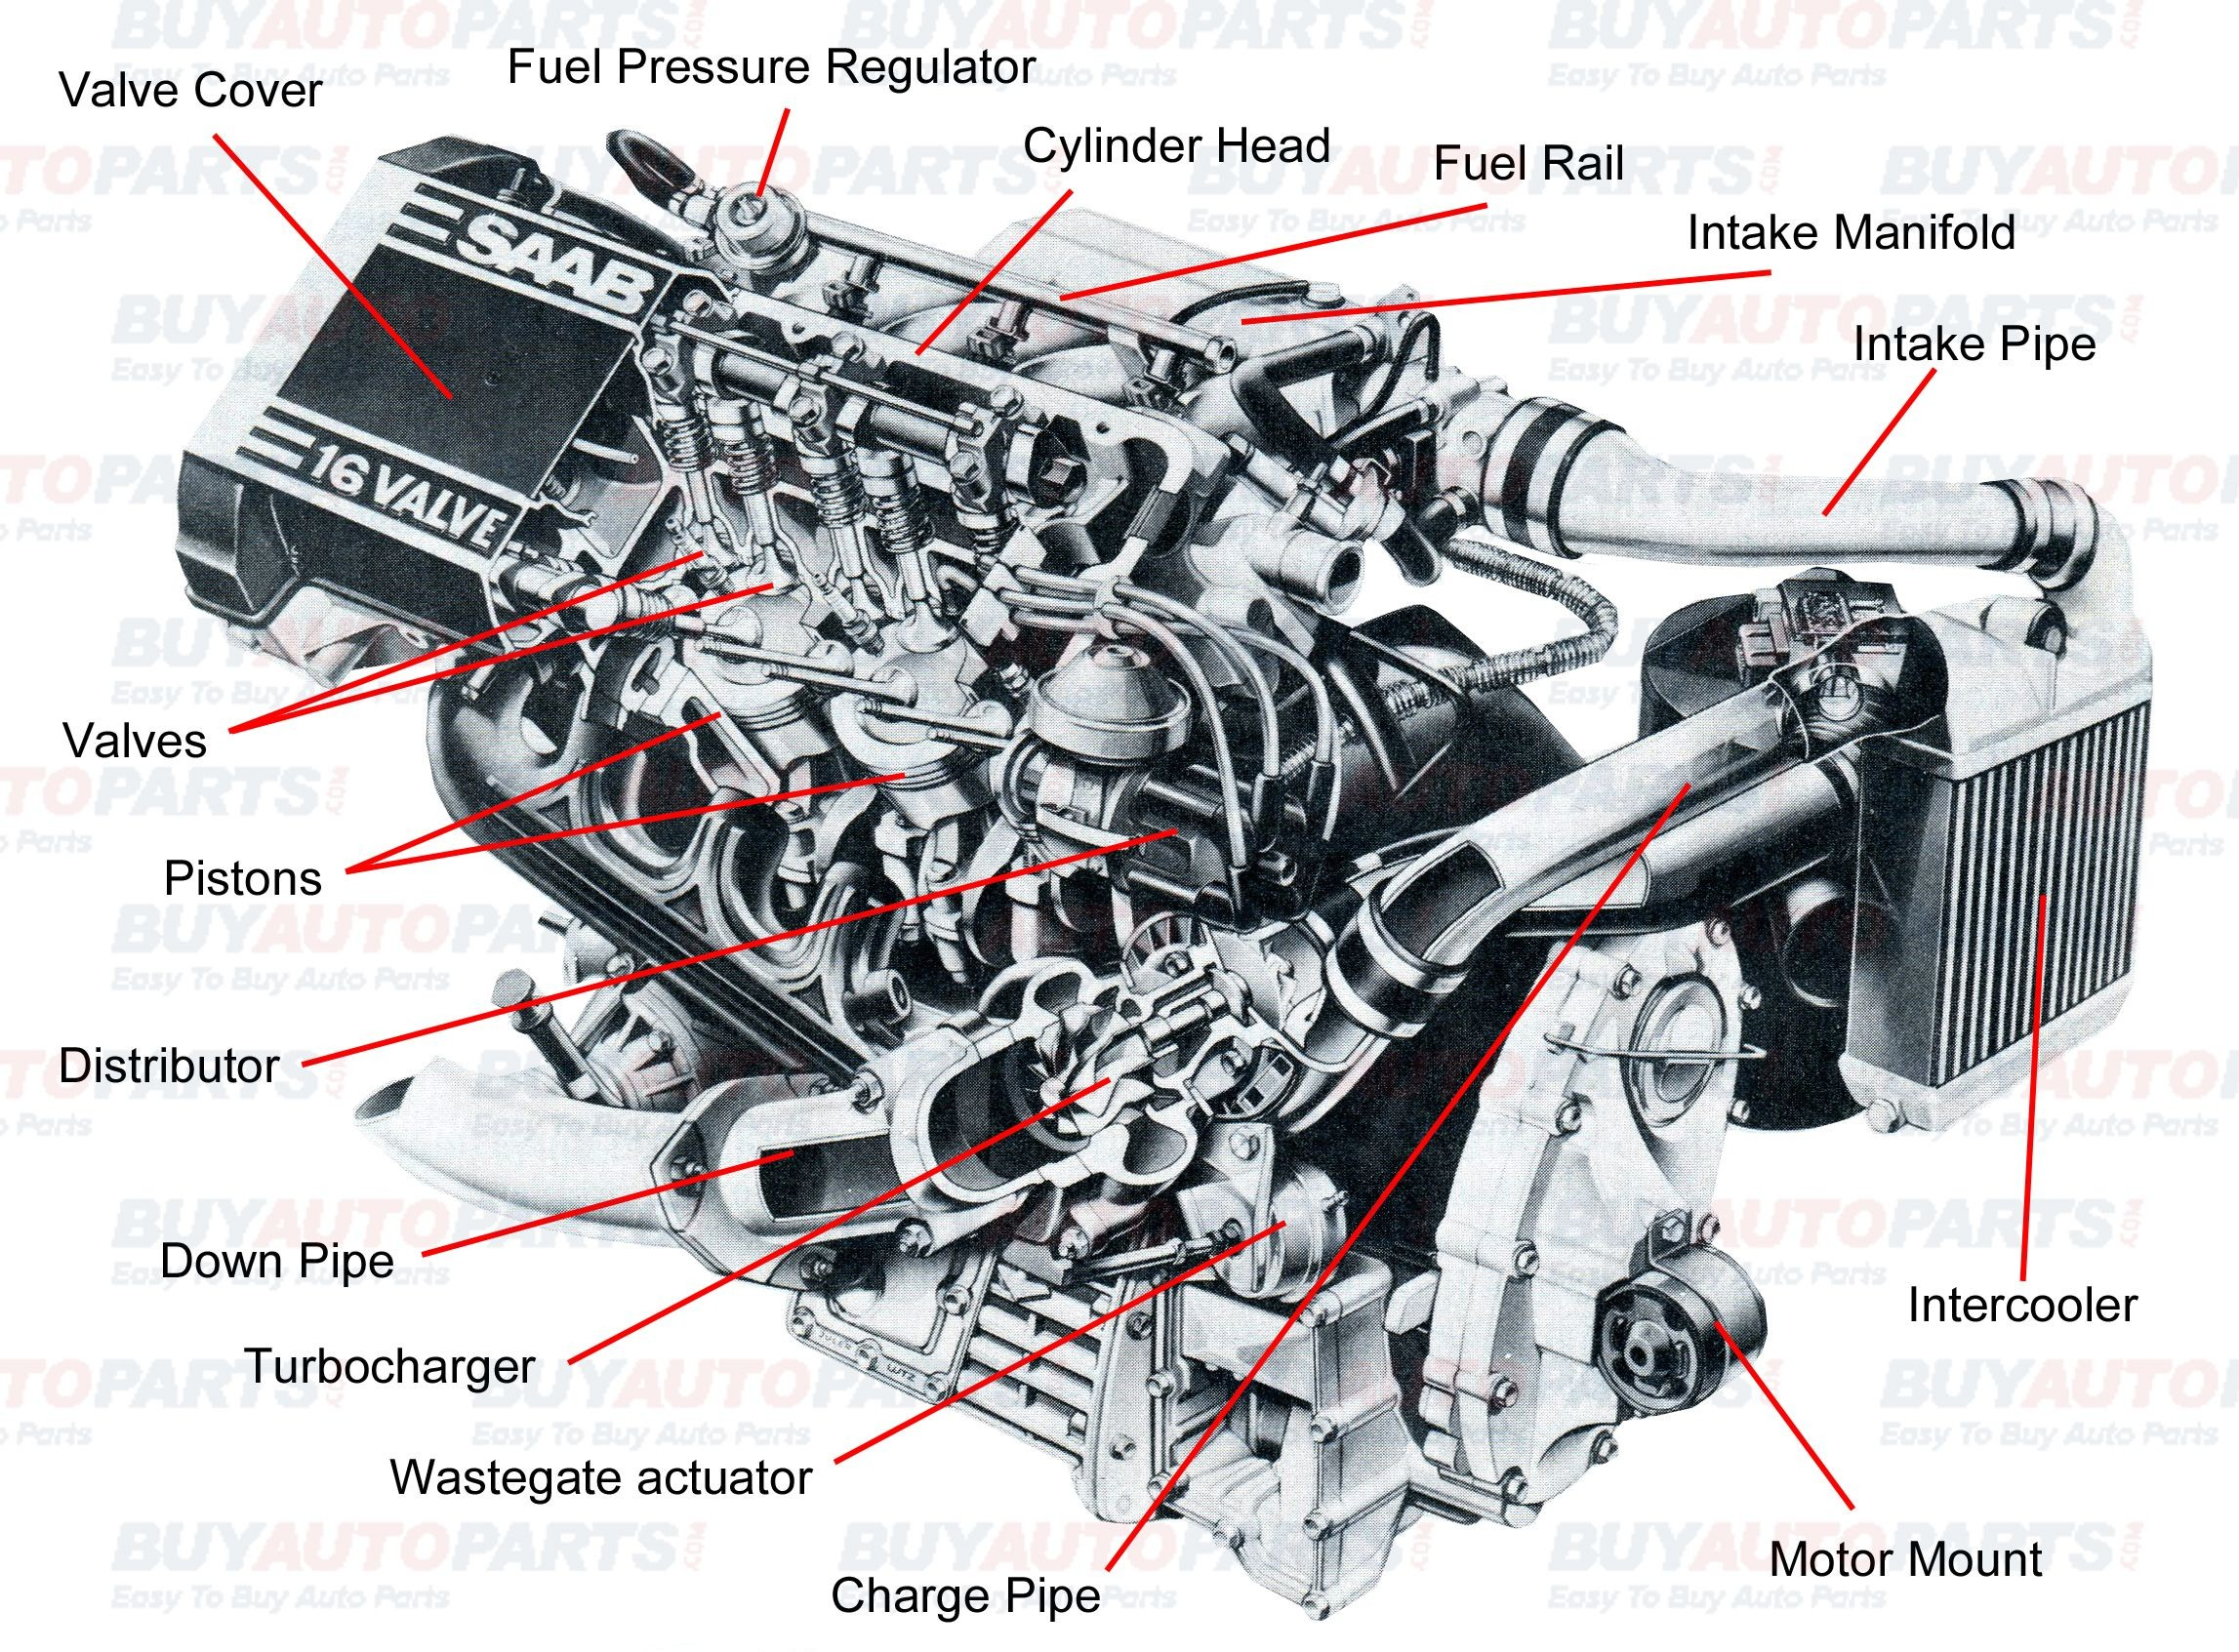 Diagram Of Car Components All Internal Bustion Engines Have the Same Basic Ponents the Of Diagram Of Car Components